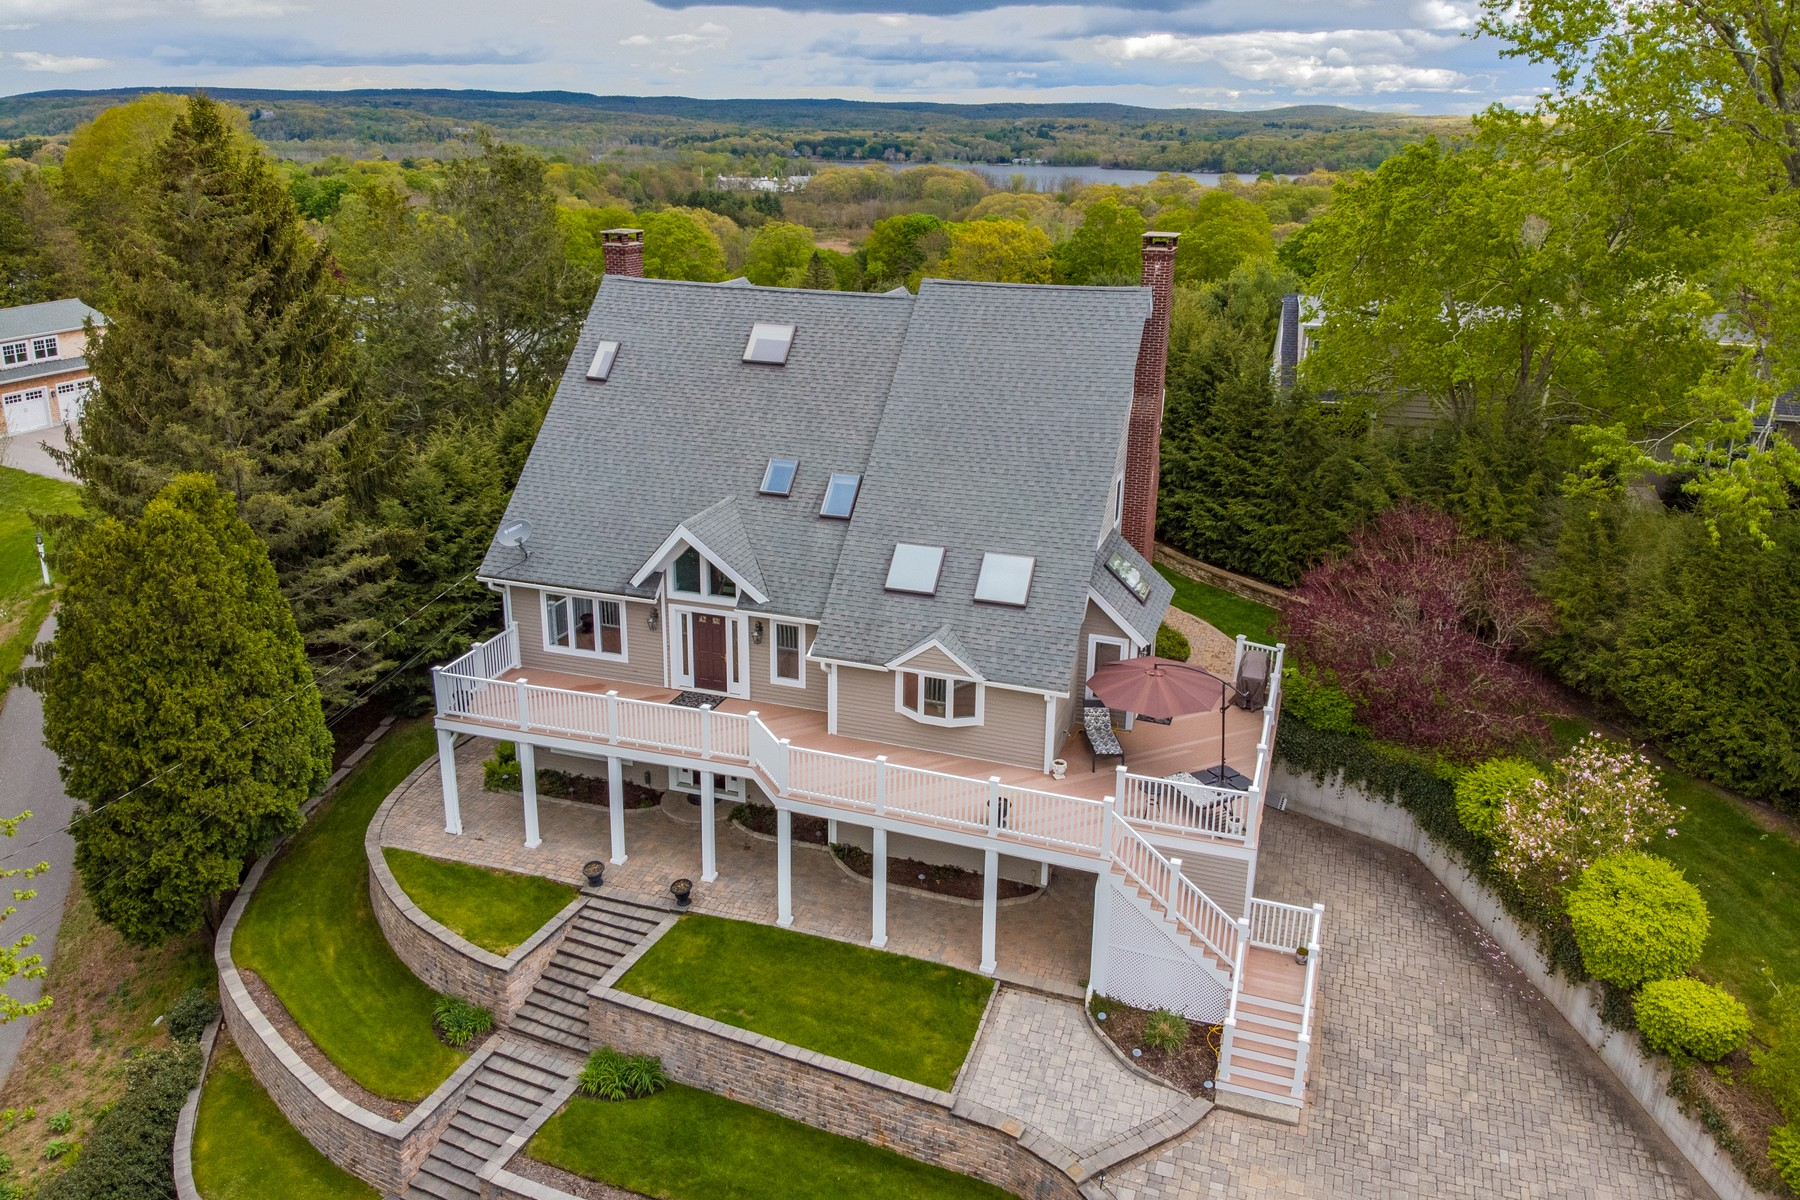 single family homes for Sale at Spectacular Views of the Connecticut River and Its Valley 25 Gilbert Hill Road, Chester, Connecticut 06412 United States